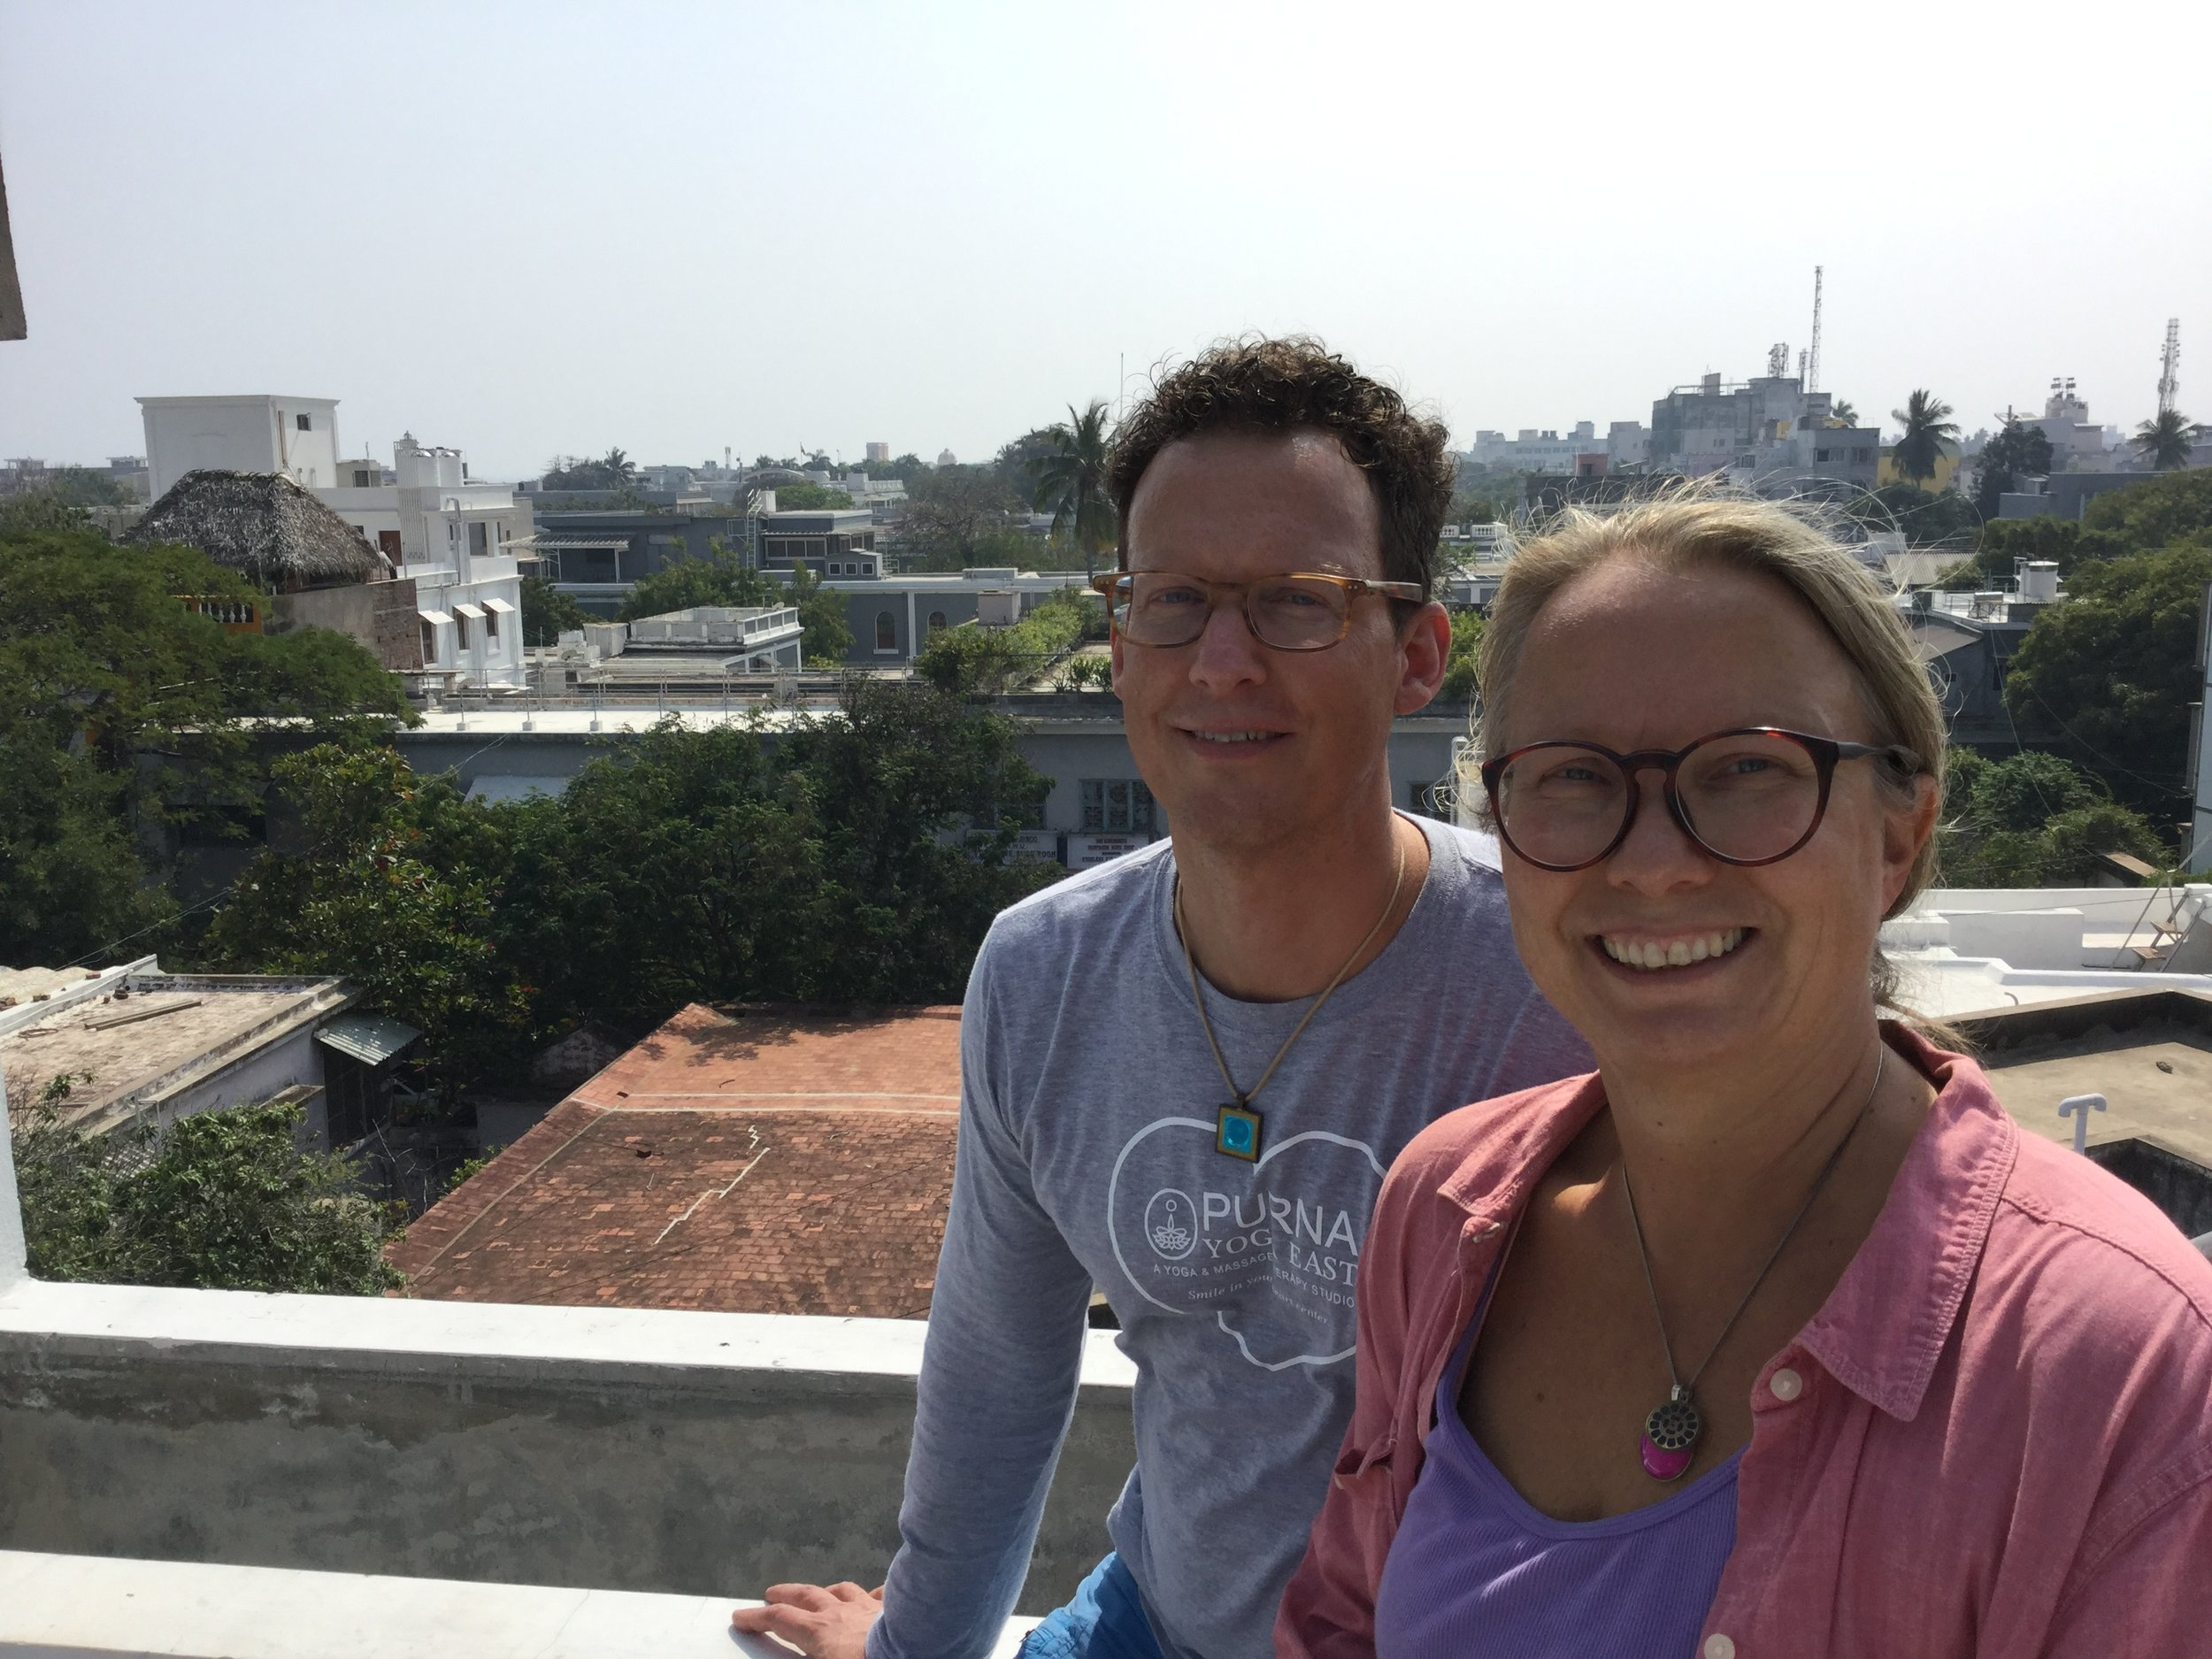 In Pondy - on our friends rooftop - you can see the Ashram in the background.